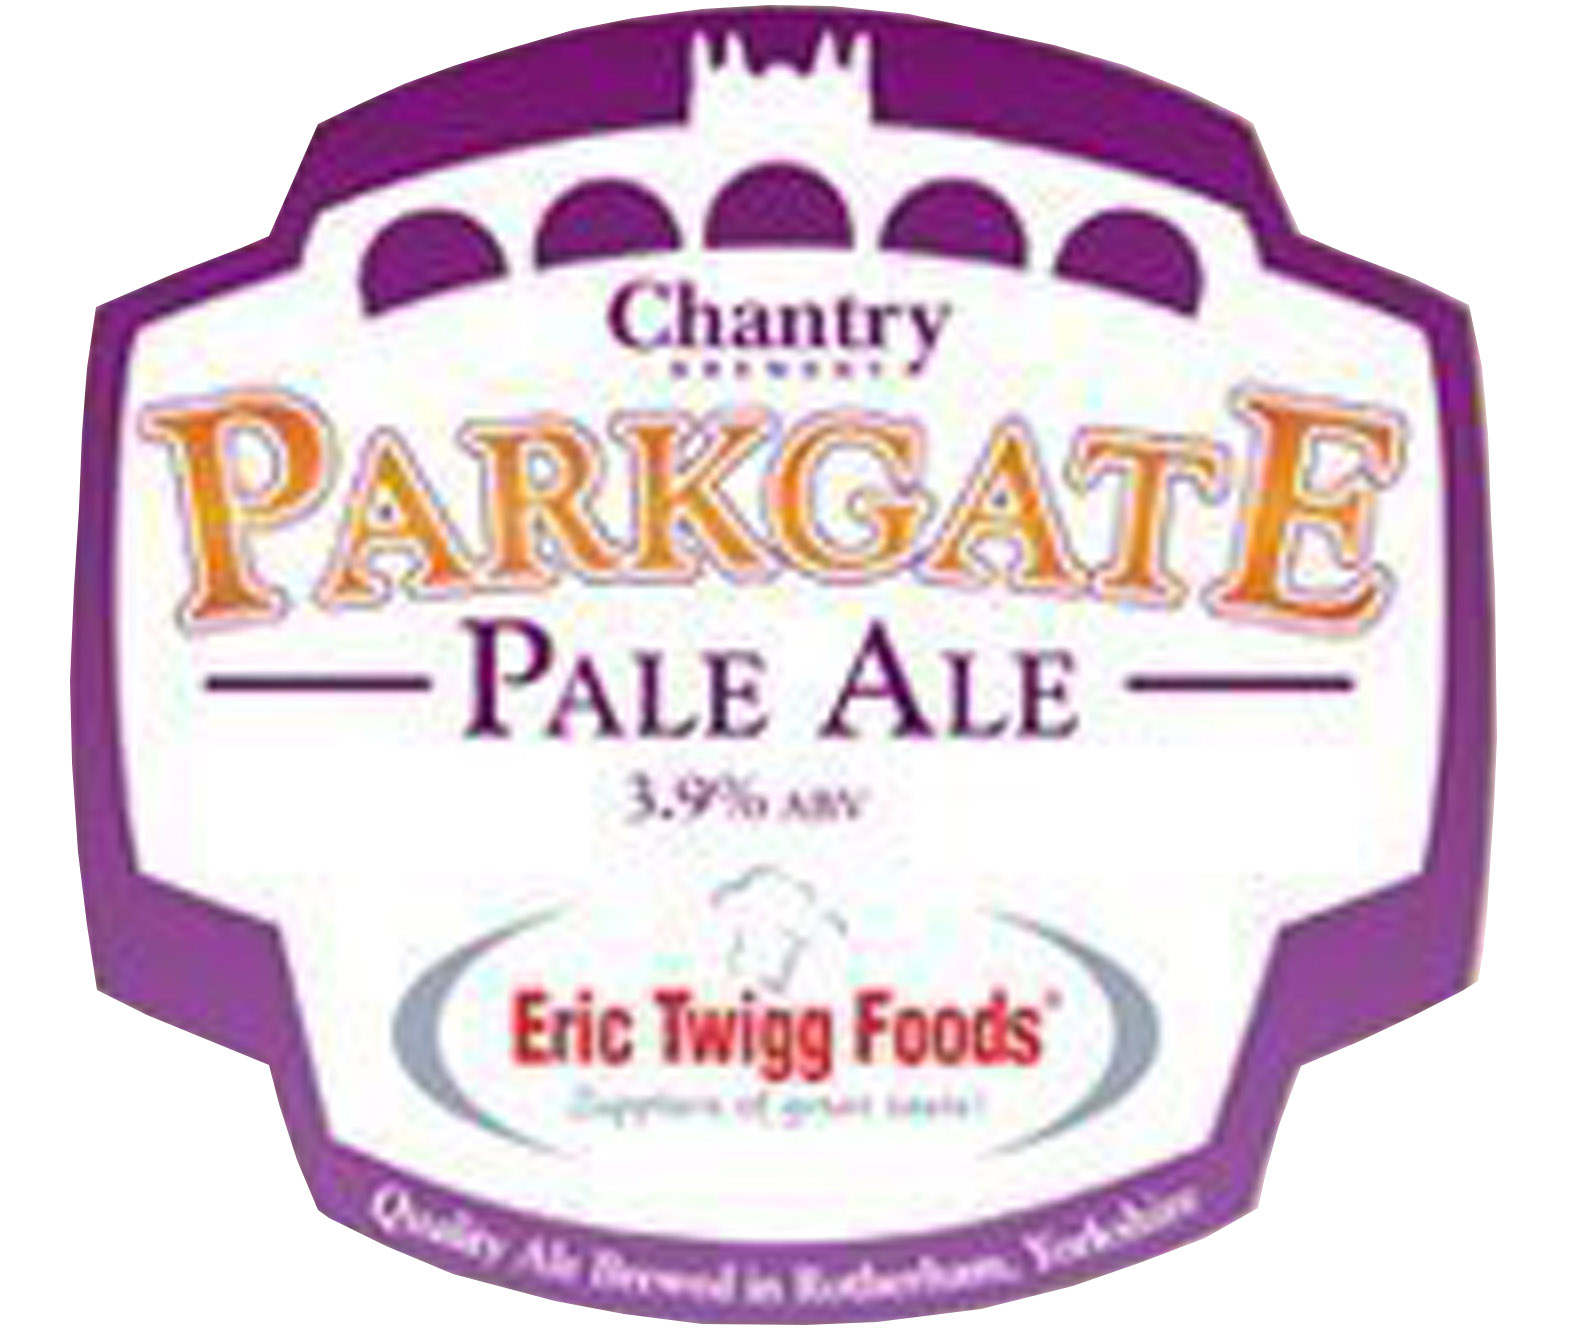 Chantry Brewery Parkgate Pale